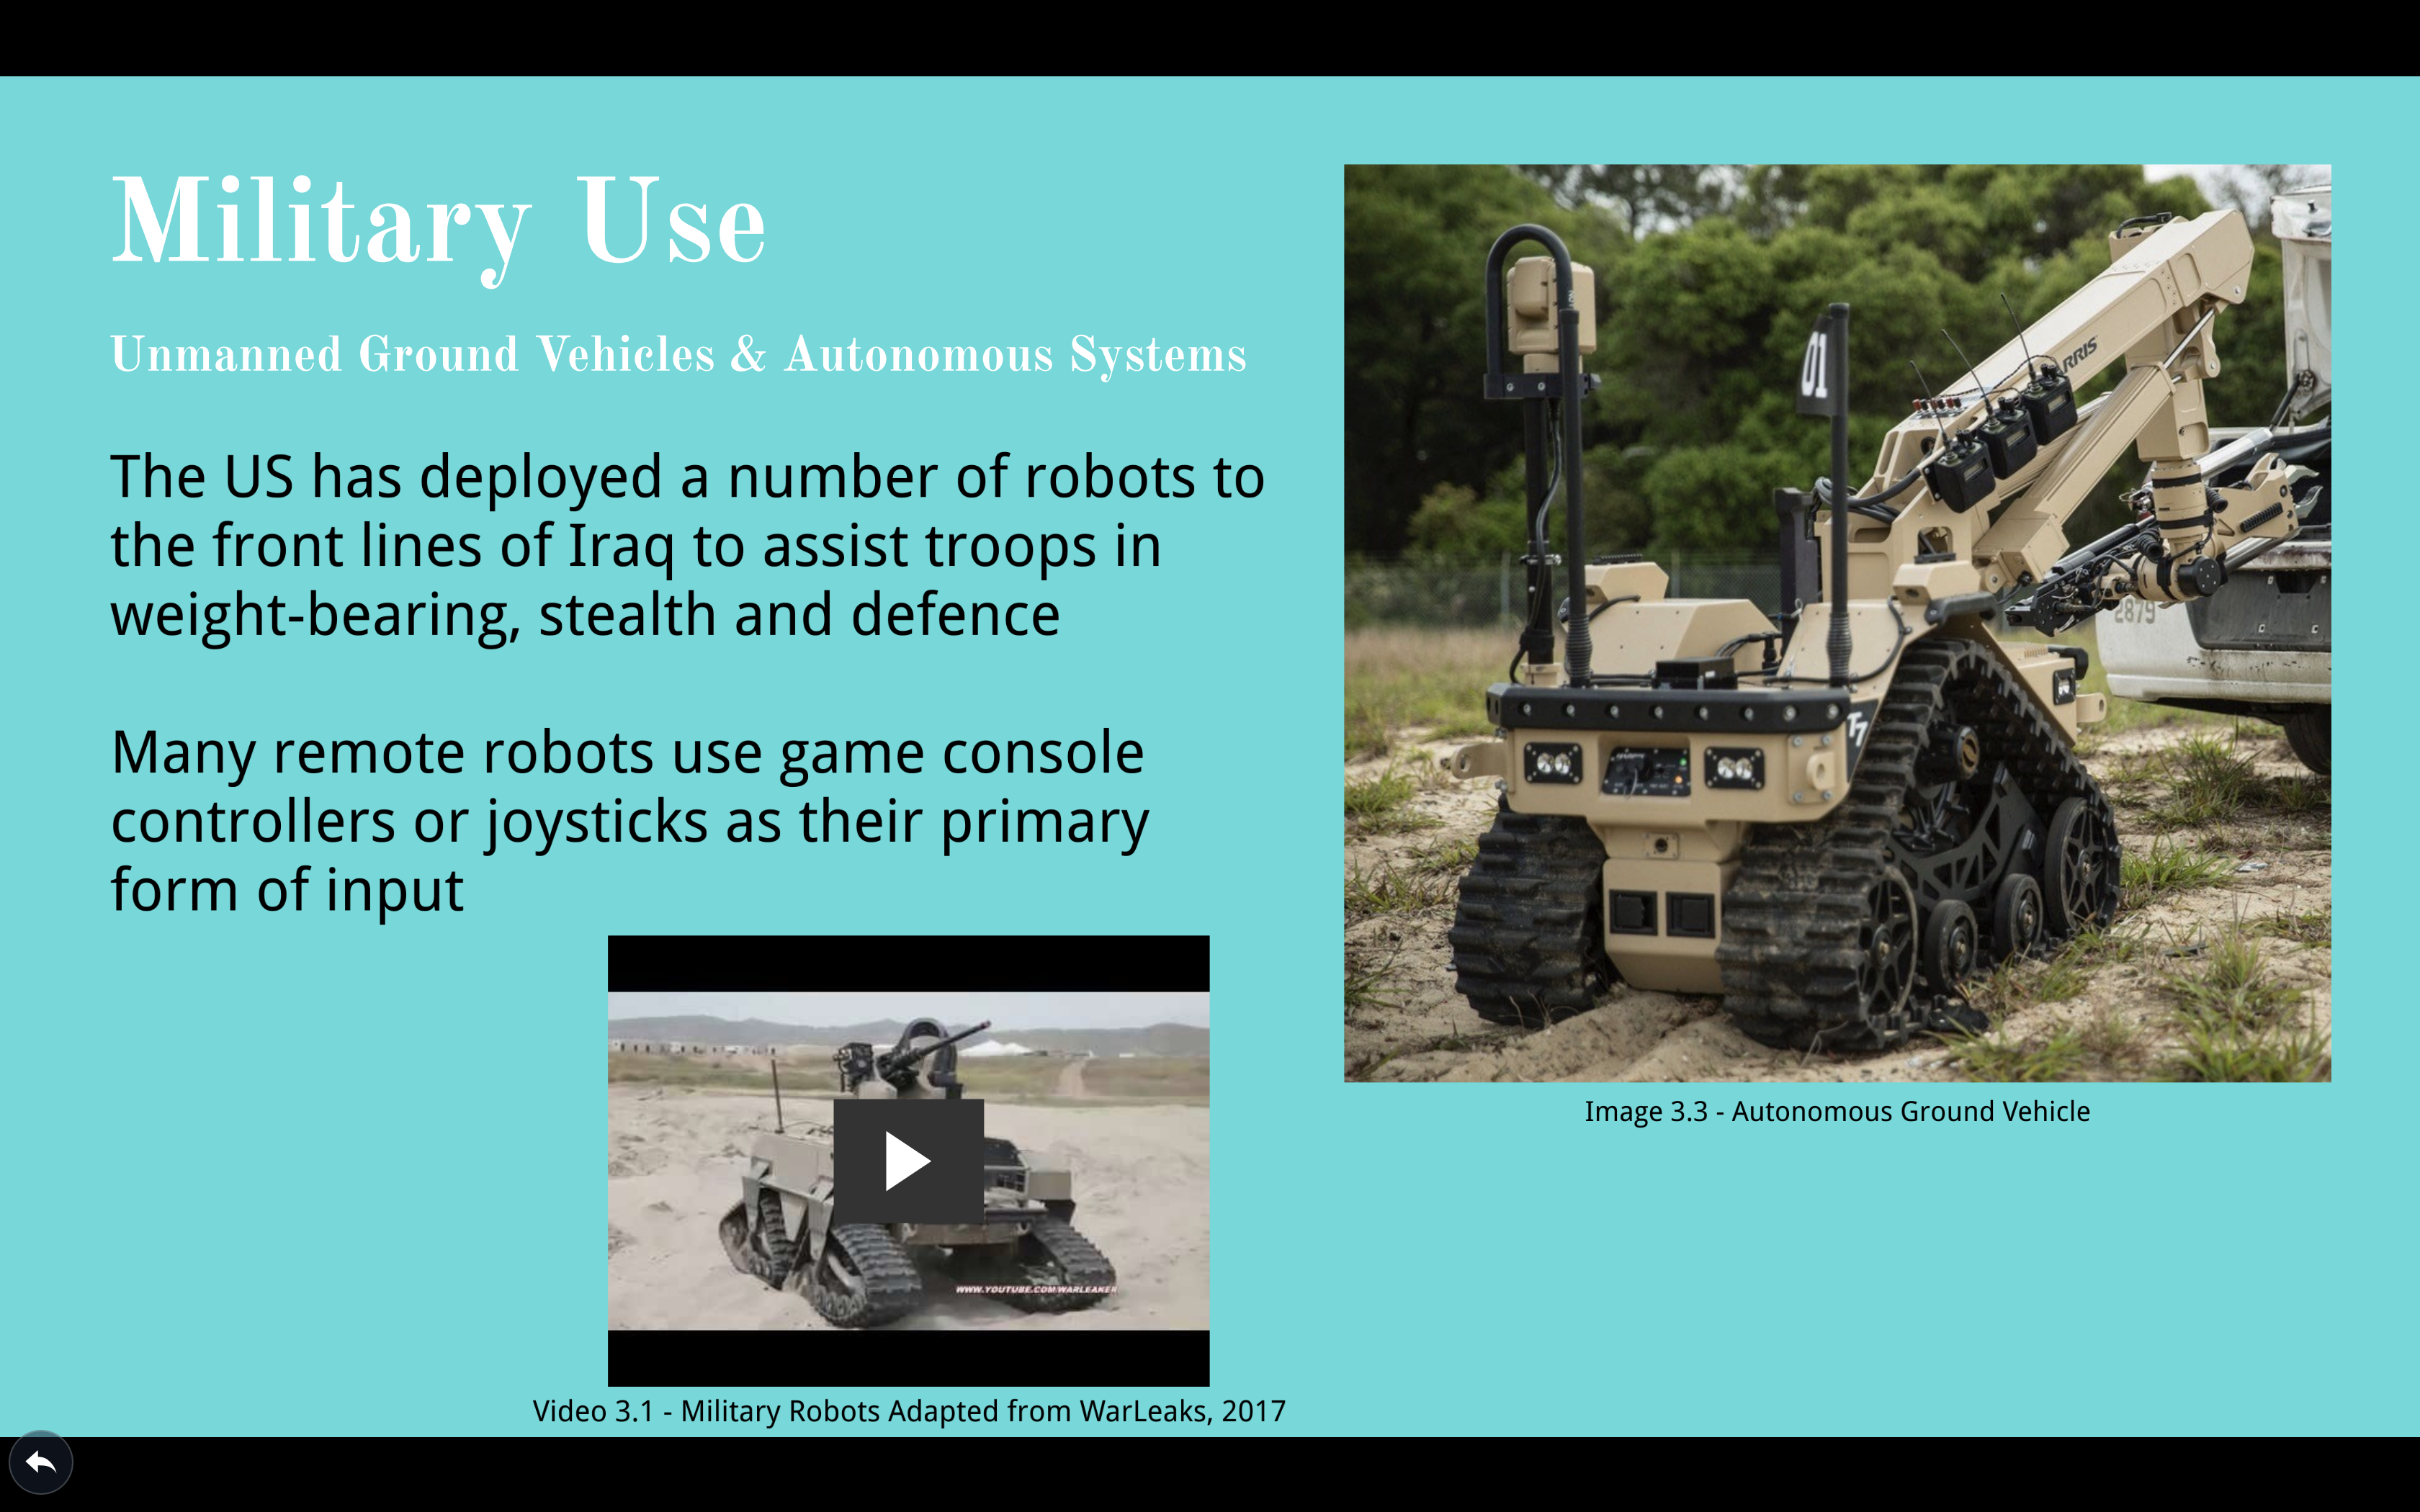 Developing Technologies: Robotics & Drones (Presentation)